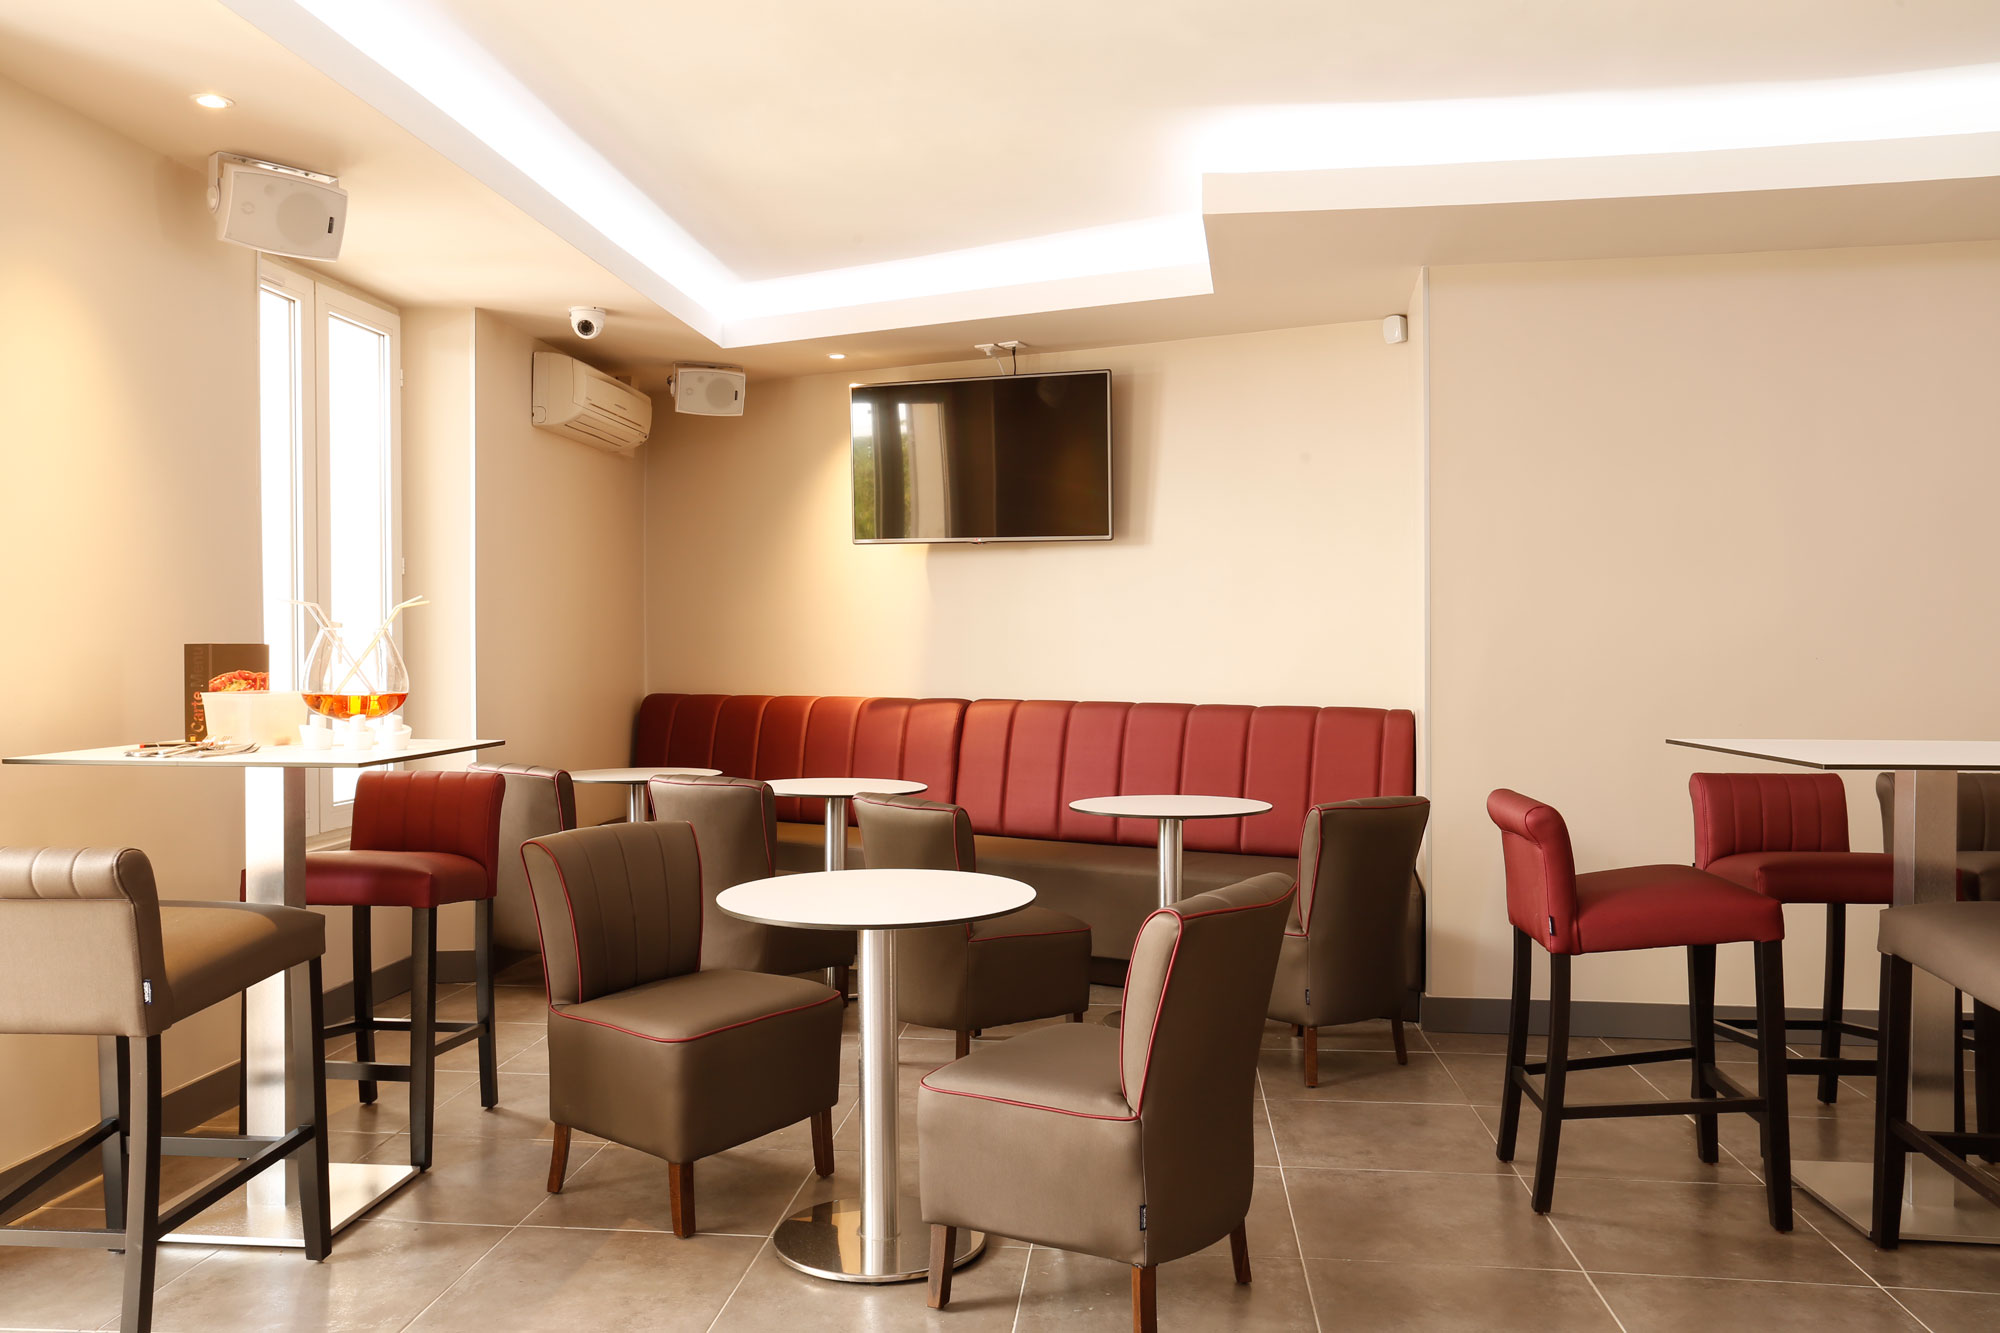 o-3-lounges-silleria-verges-mobilier